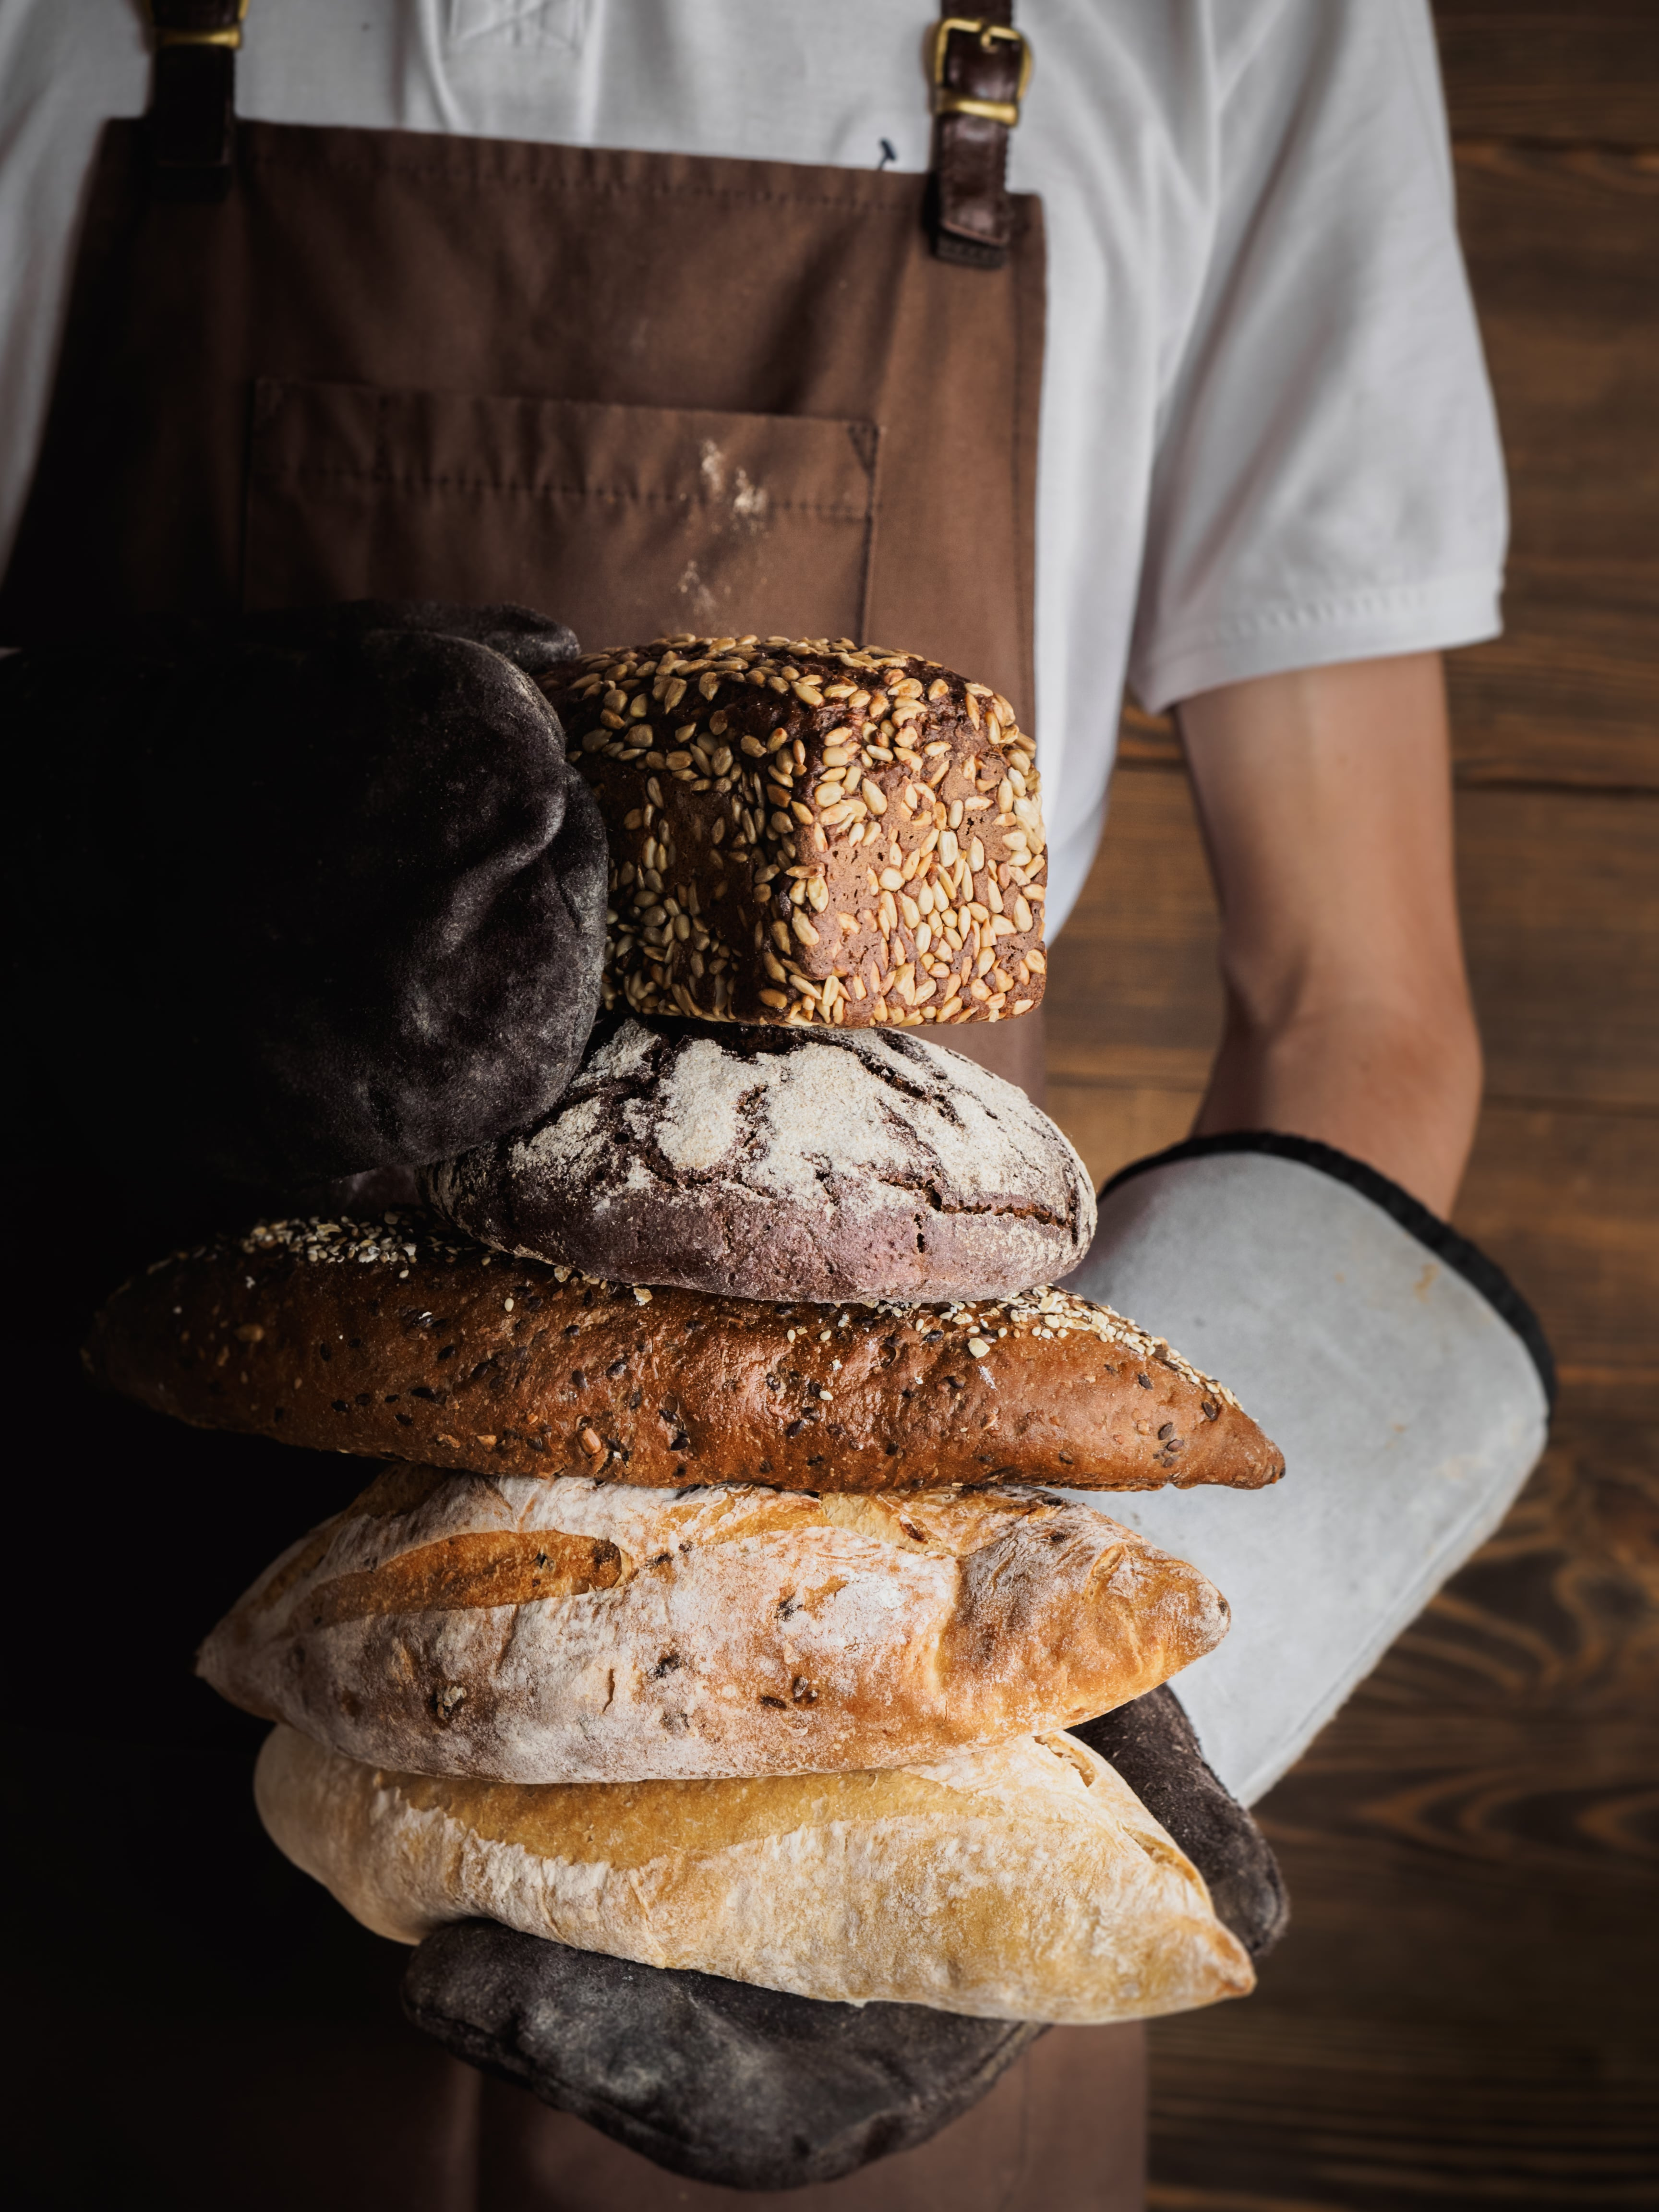 What Is the Healthiest Bread to Stay Slim?